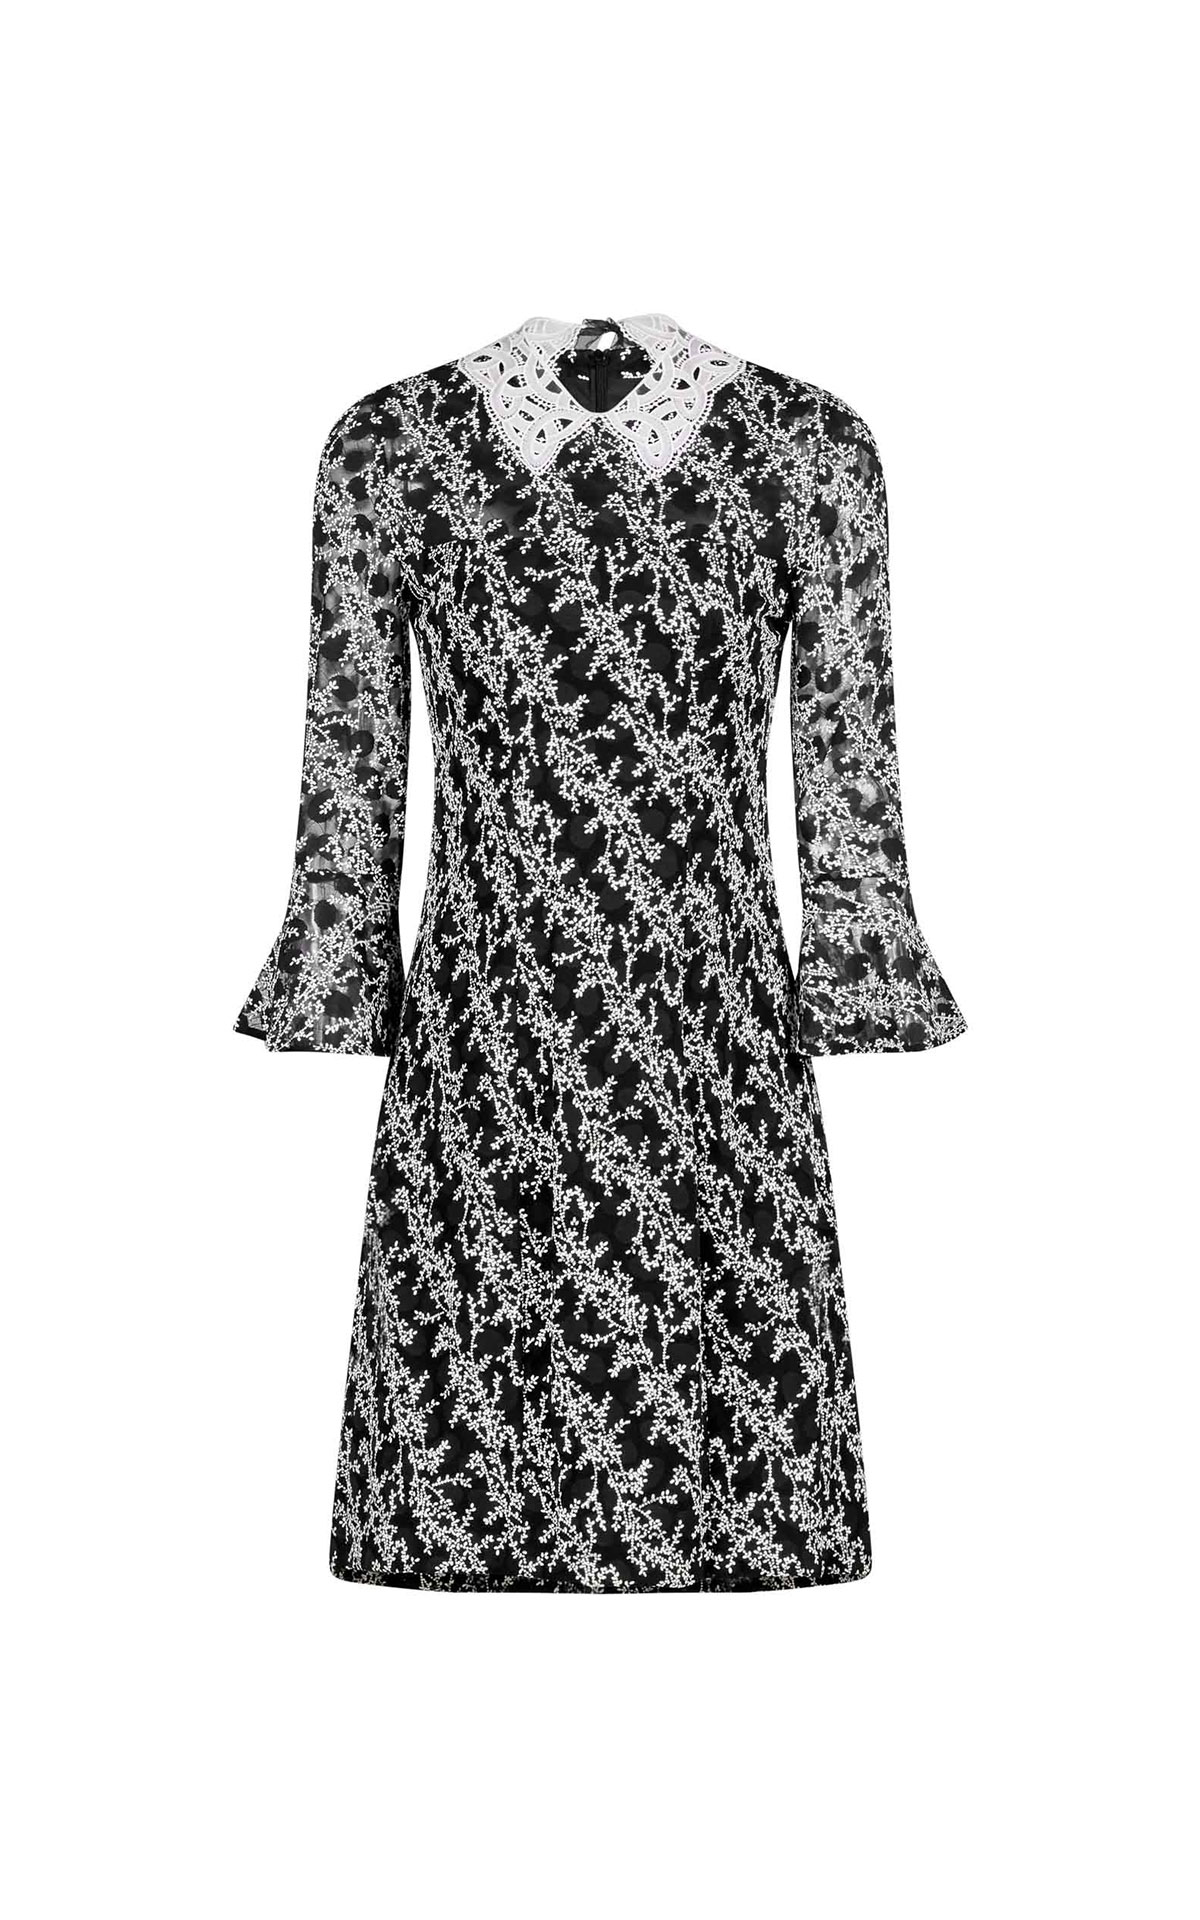 Anne Fontaine Vivaldi dress from Bicester Village